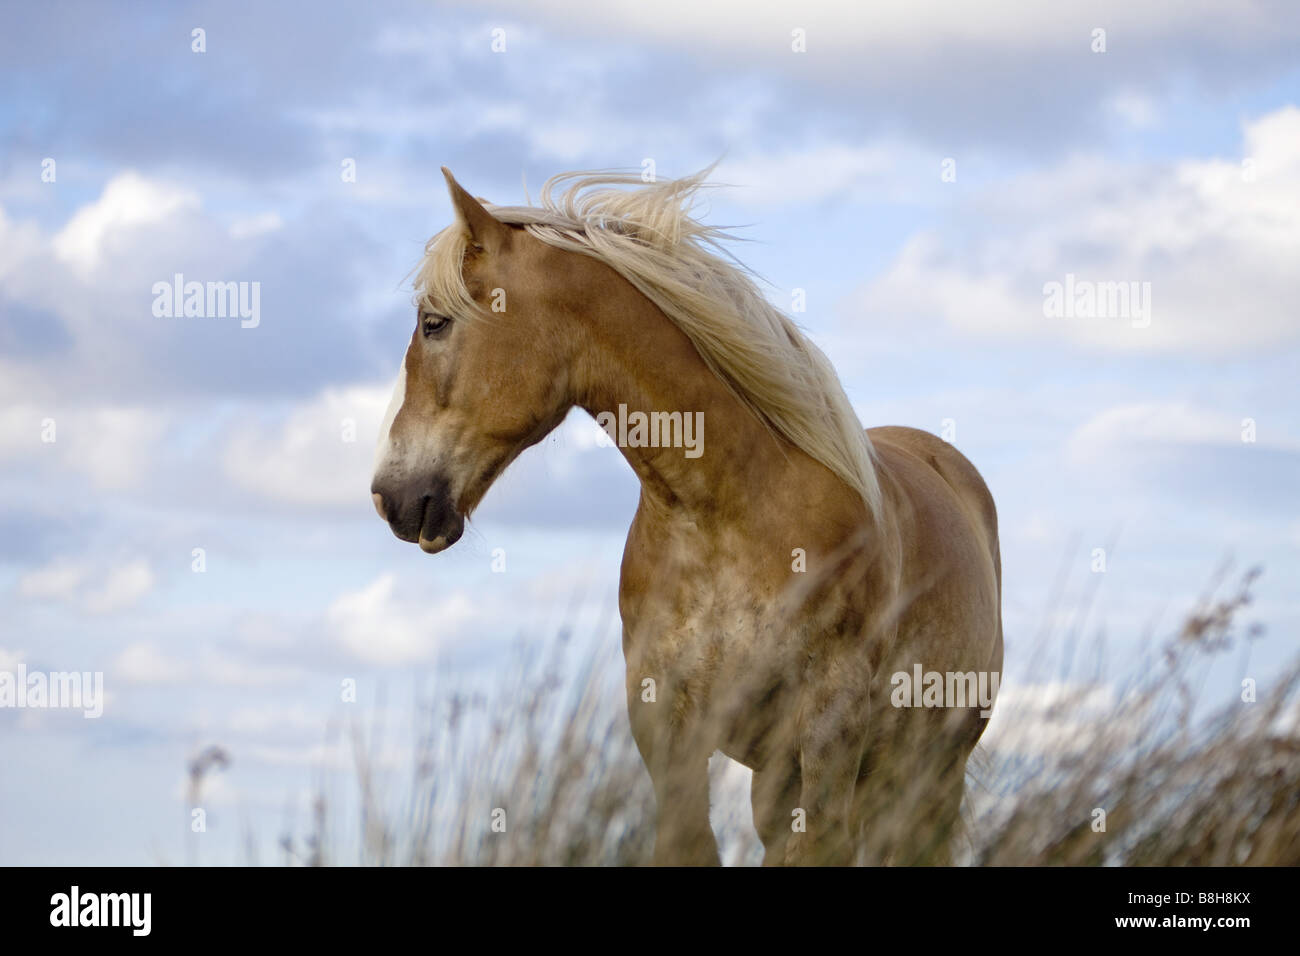 Schleswiger heavy draft horse - standing - Stock Image